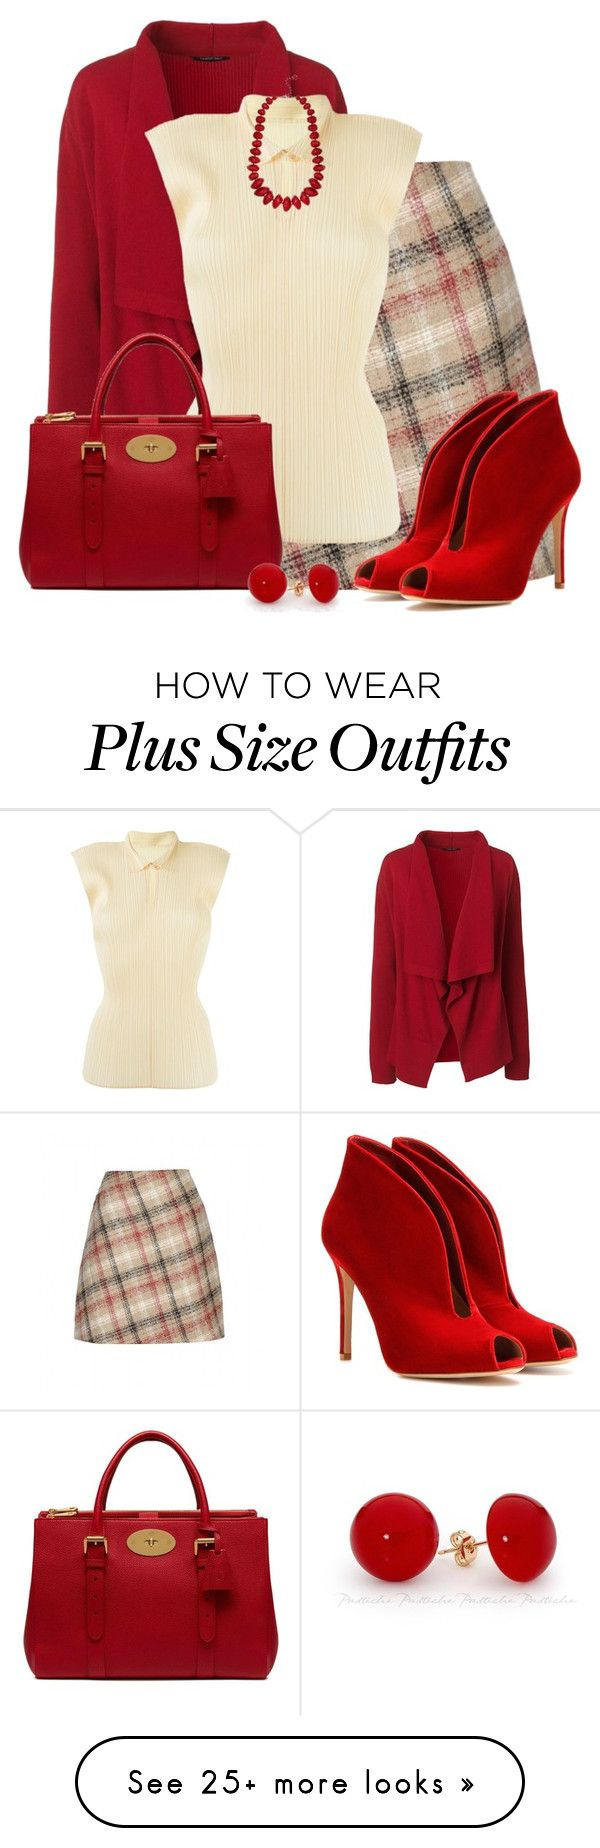 """Plaid for Fall."" by cris-1121 on Polyvore featuring Carven, Lands' End, Issey Miyake, Mulberry, Gianvito Rossi and M&Co"